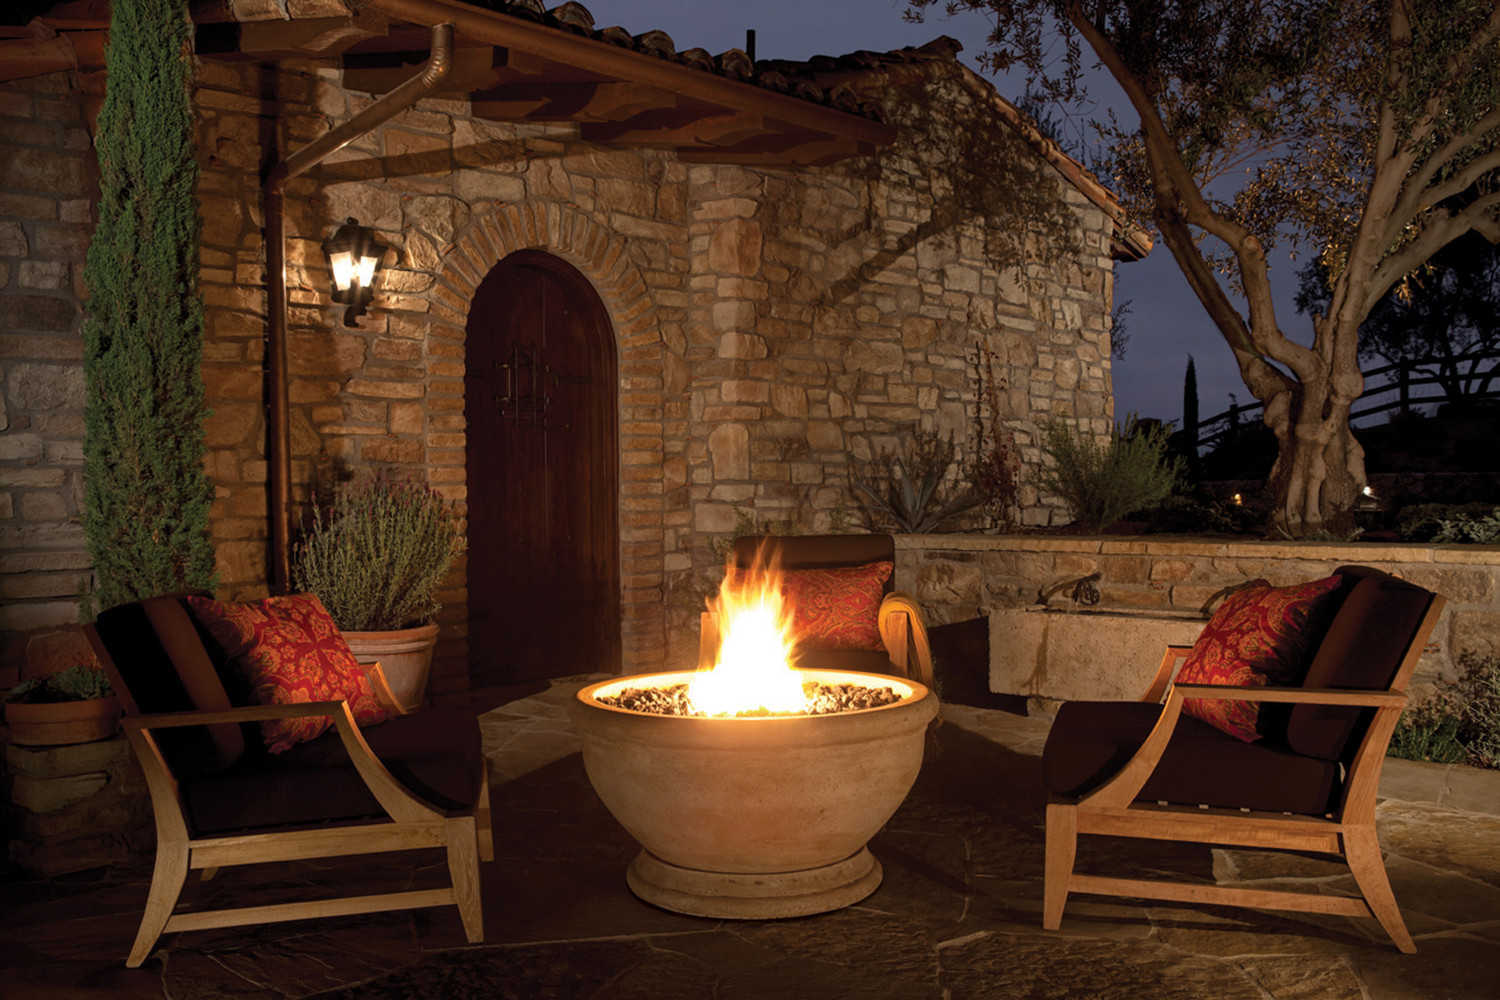 eo marbella fire bowl oak barrel travertine ext night